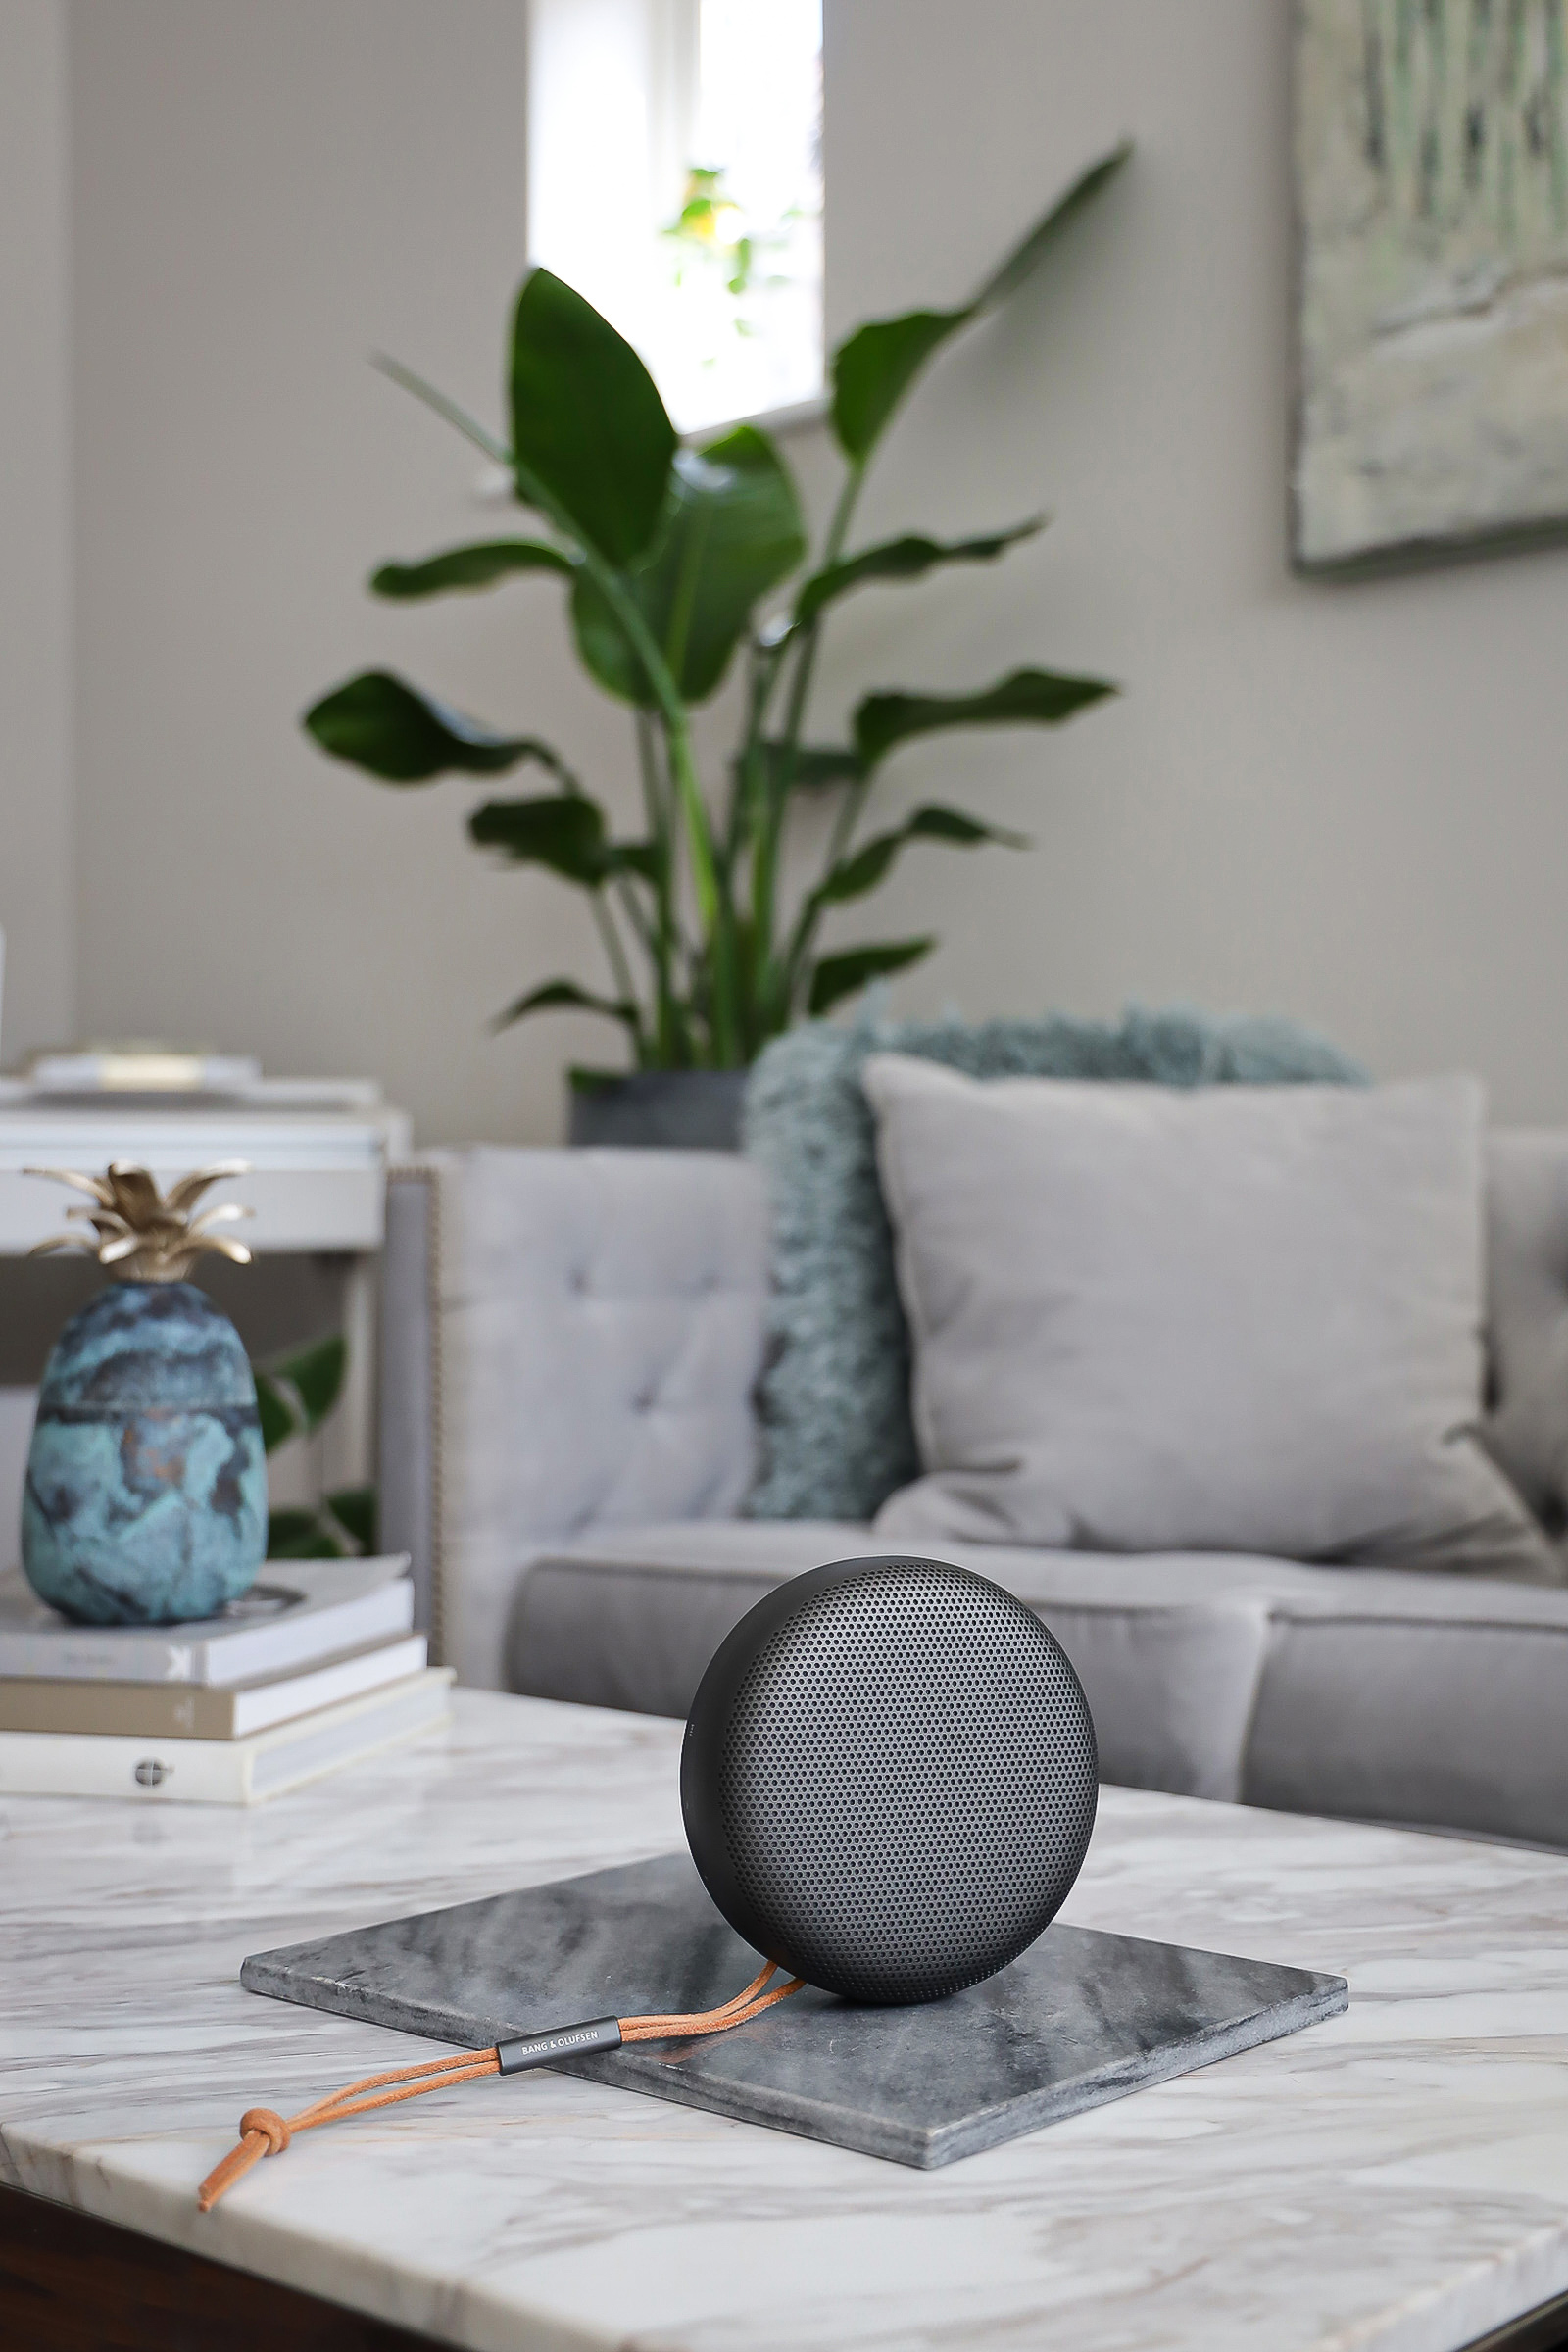 BANG & OLUFSEN BEOPLAY A1 2ND GENERATION